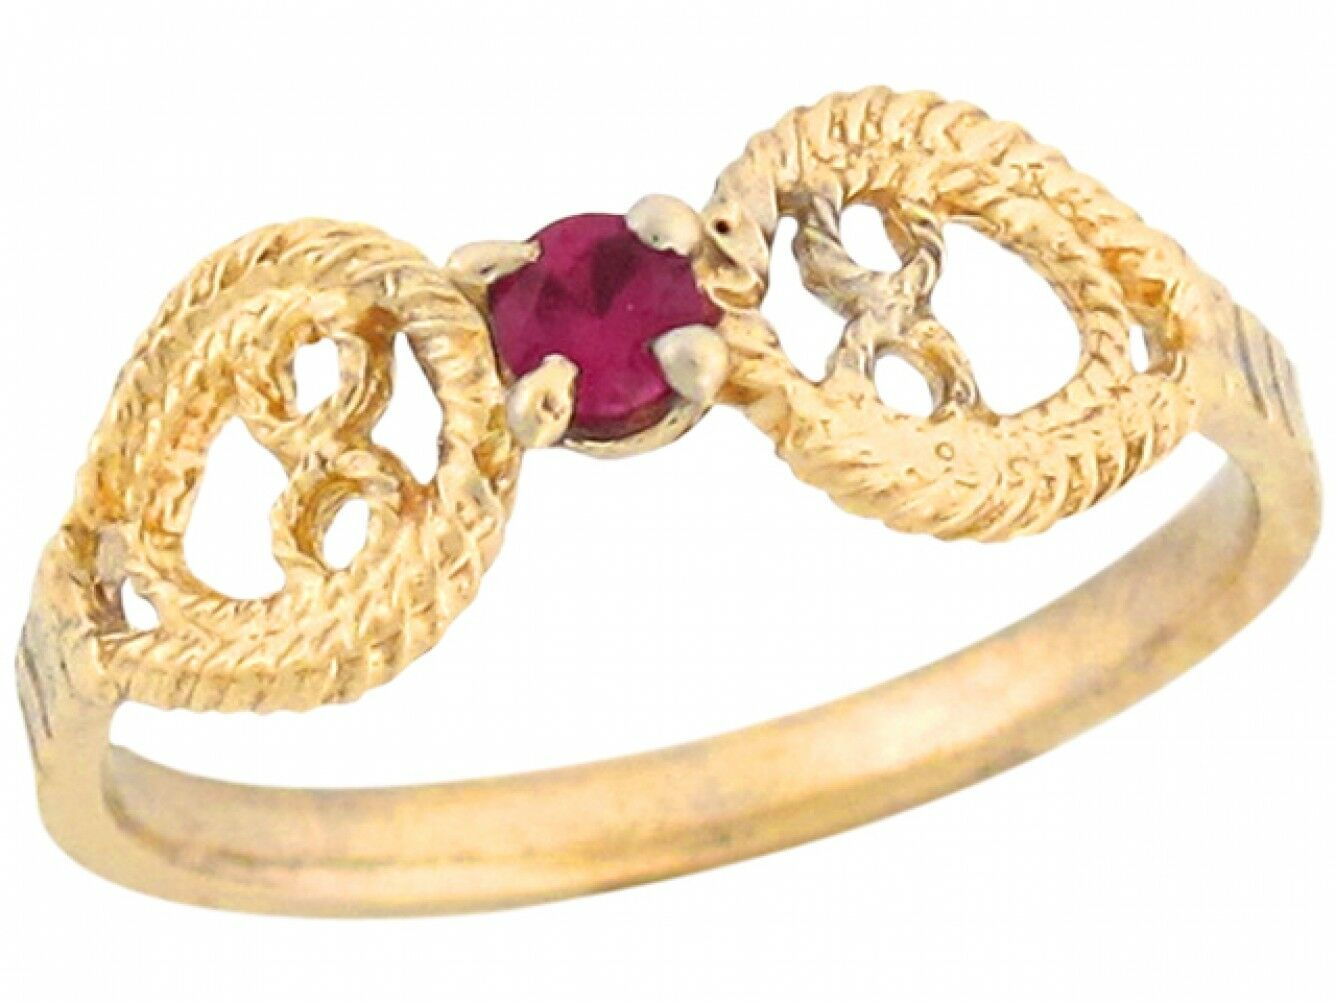 10k or 14k gold Simulated Ruby Solitaire Angel Wings Designer Baby Girl Ring